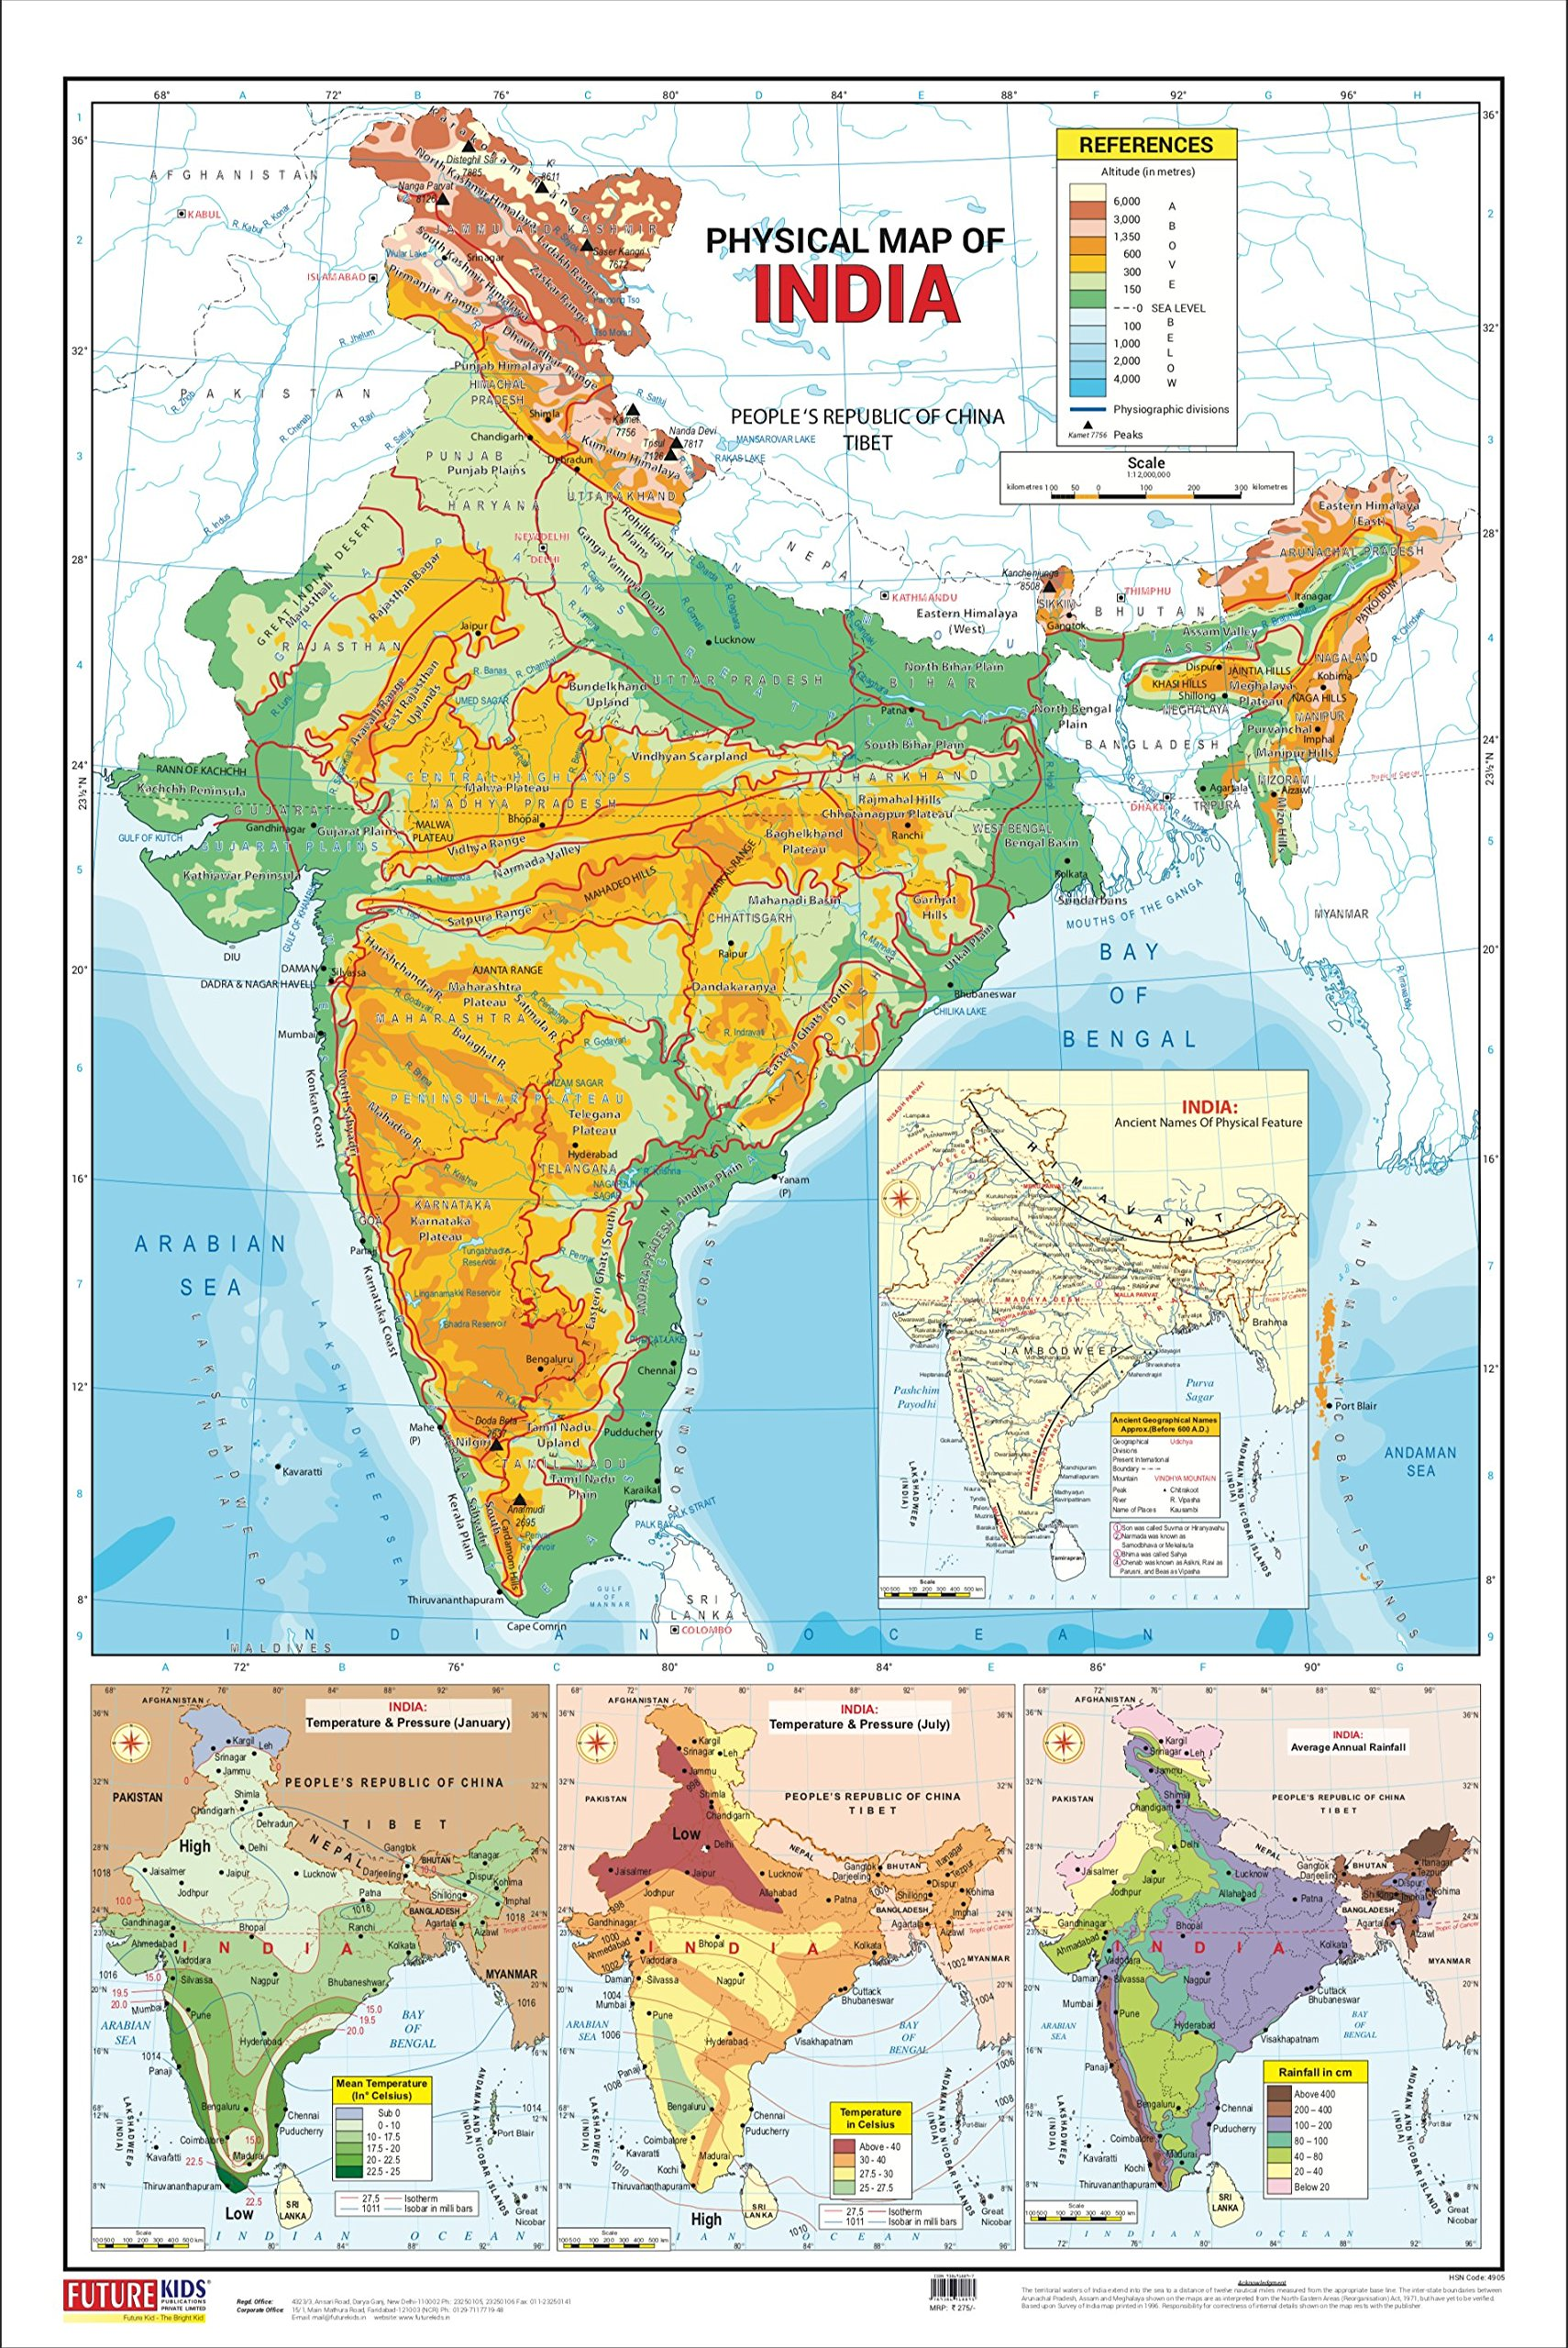 India Map- Physical (50.8cm X 76.2cm): Amazon.in: Future Kids ... on physical map of indian ocean, physical map of himachal pradesh, physical map of india and china, physical map of mekong, physical map of brahmaputra river, physical map of malay peninsula, physical map of continent, physical map of bay of bengal, physical map of laccadive sea, physical map of papua new guinea, physical map of godavari river, physical map of western united states, physical map of varanasi, physical map of united arab emirates, physical map of south asia, physical map of yellow river, physical map of pacific islands, physical map of balkans, physical map of western ghats,